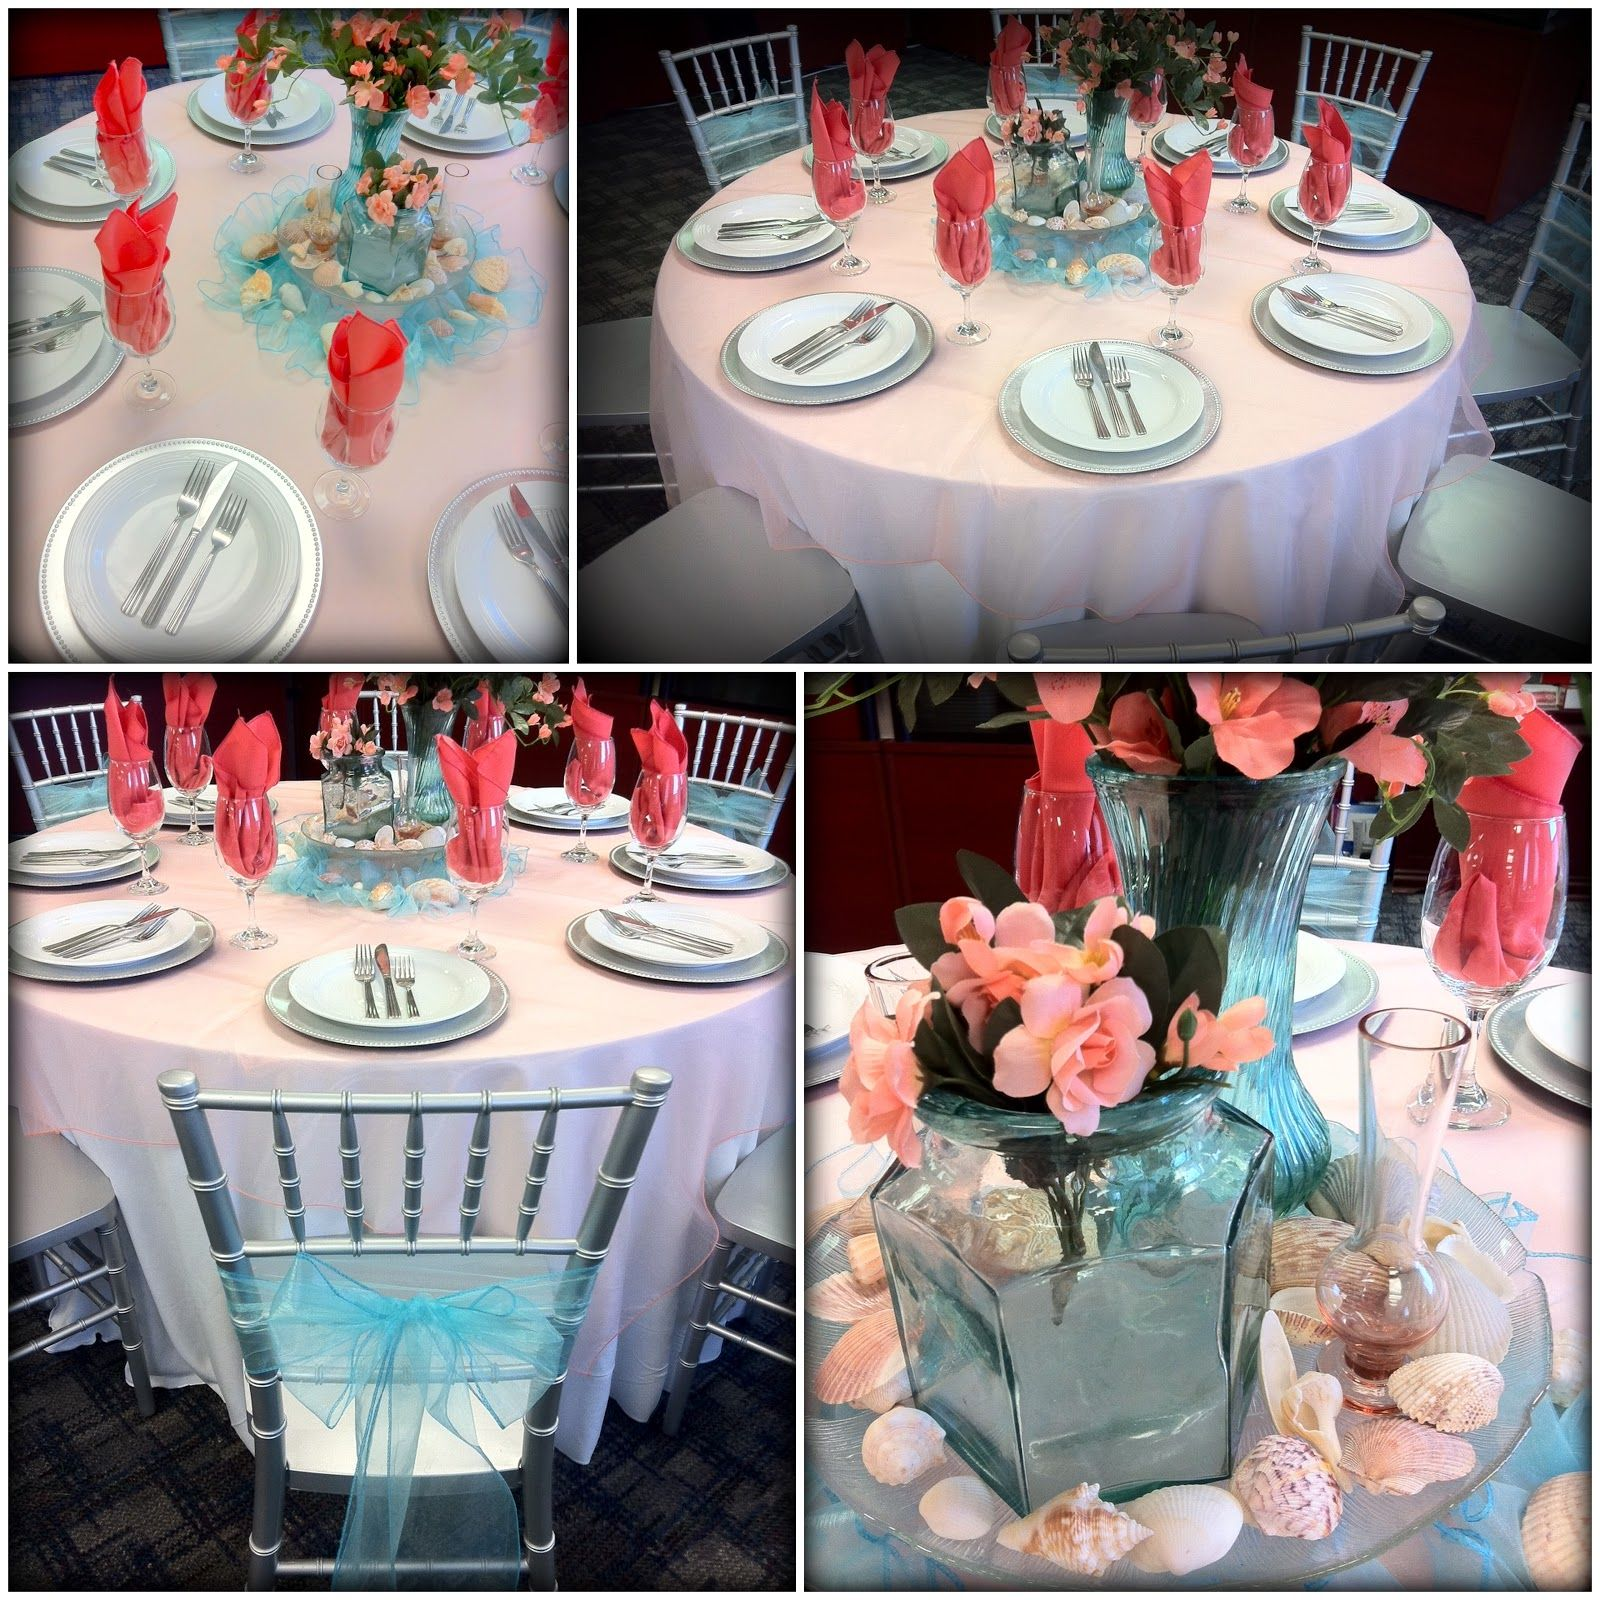 Decorado De Mesas I Like The Idea Of Keeping The Table Linens White And  Having A Colored Napkin Either Coral Or Turquoise